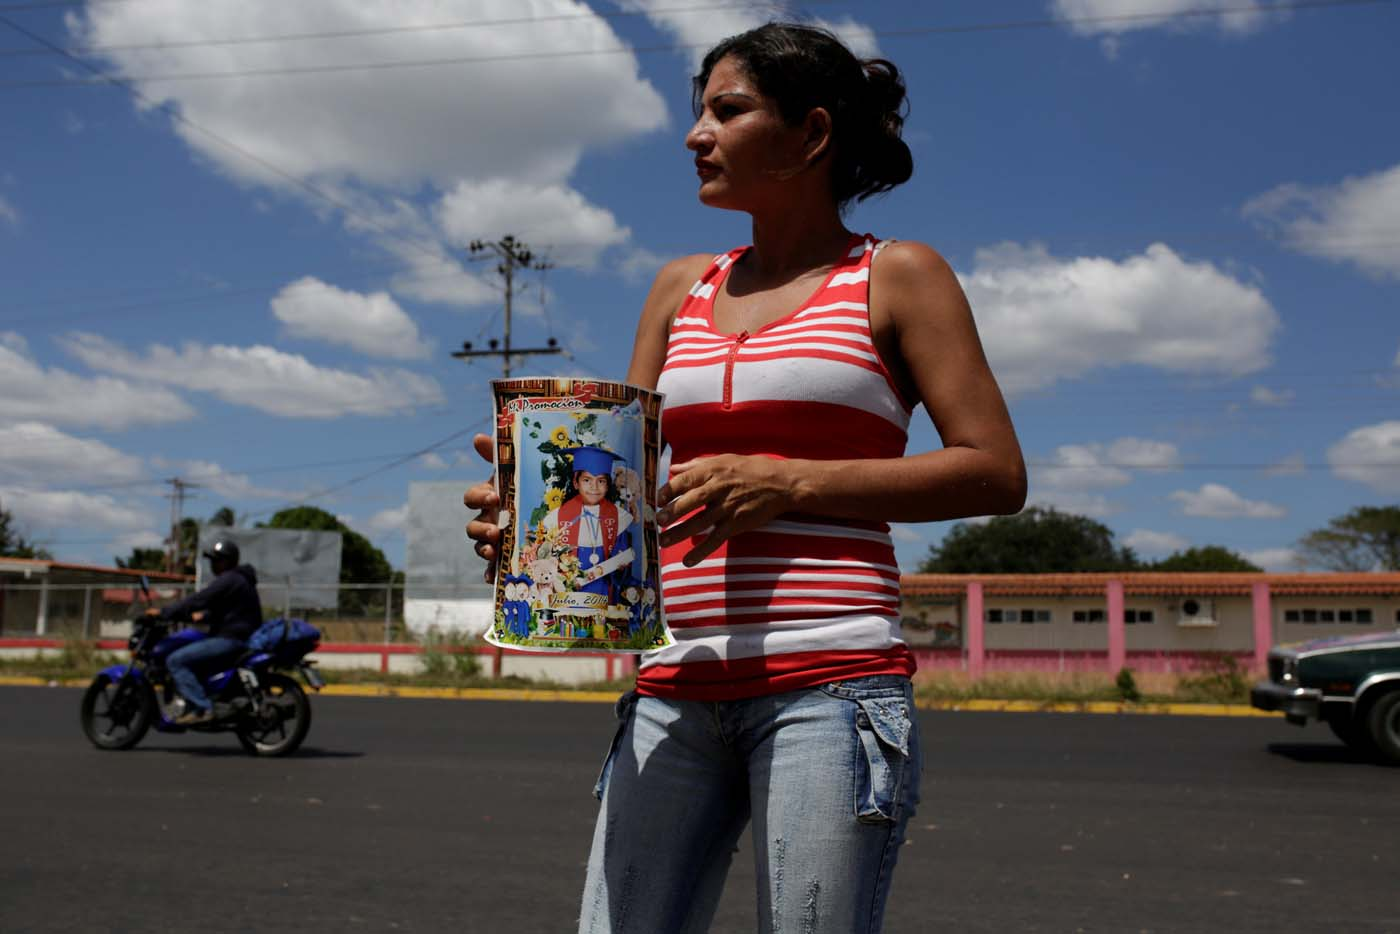 An aunt of Eliannys Vivas collects money to pay a loan used for the funeral of Eliannys, who died from diphtheria, along a main street in Pariaguan, Venezuela January 26, 2017. Picture taken January 26, 2017. REUTERS/Marco Bello